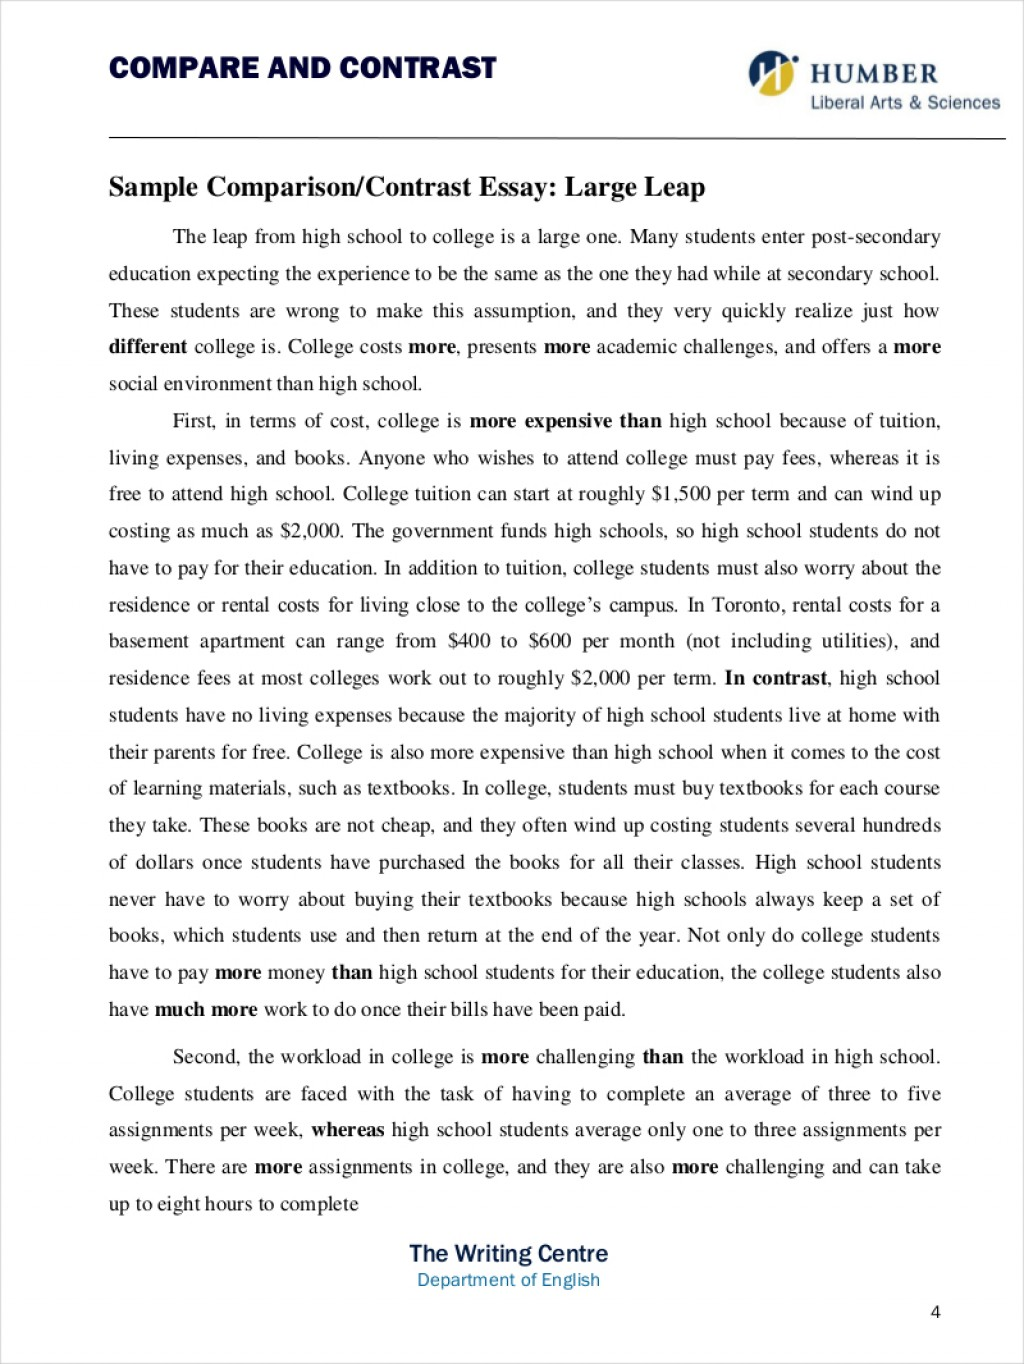 009 Comparison And Contrast Essay Comparative Samples Free Pdf Format Download Throughout Compare Examples Thesis Coles Thecolossus Co Within Ex 5th Grade 4th 6th 3rd High Awful Rubric Template Word Large